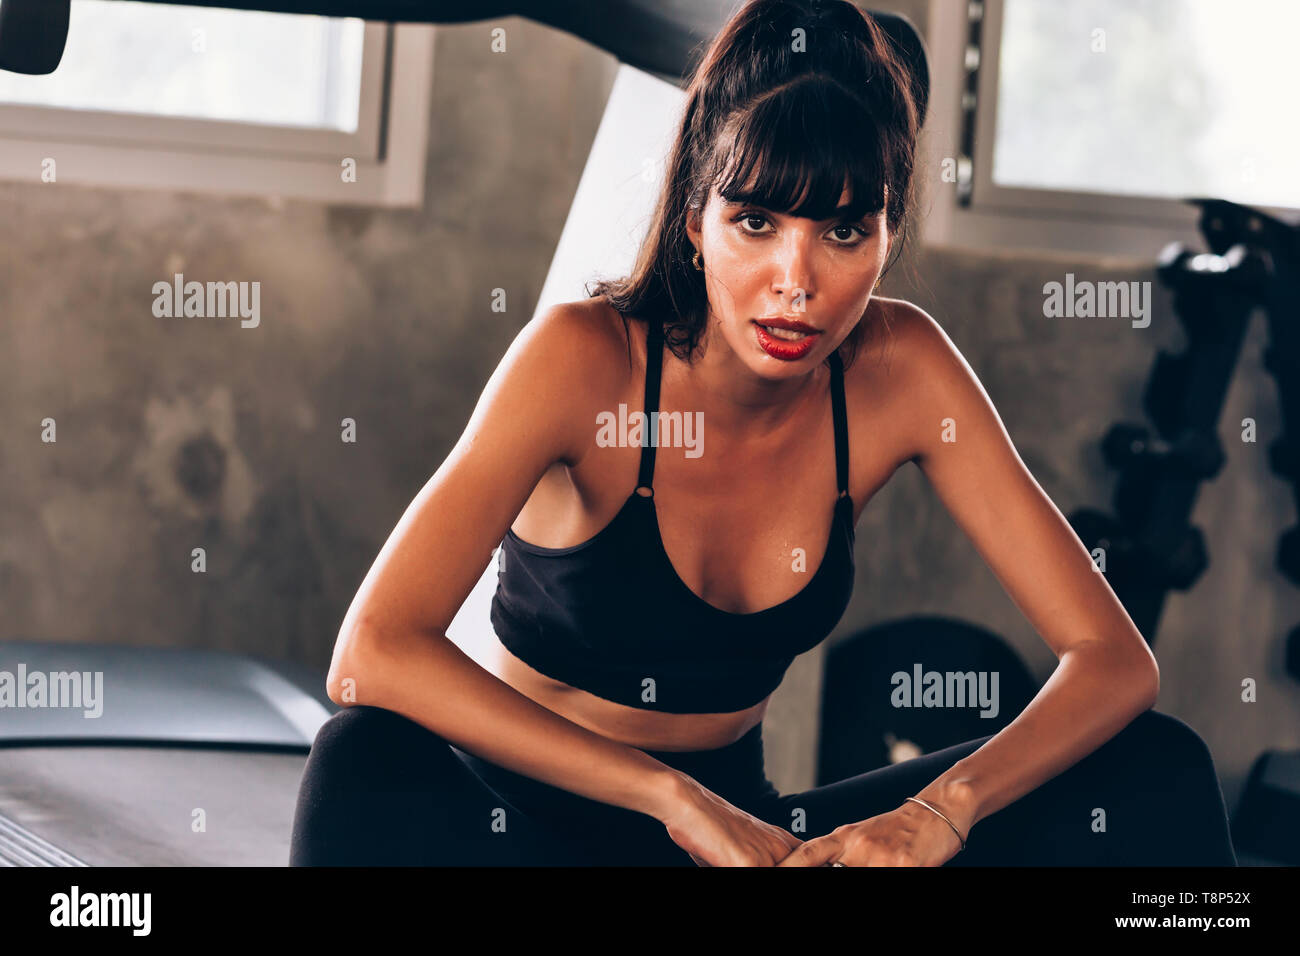 Young Caucasian beautiful female fitness model on sweat wearing sportswear and sitting on treadmill in gym. Health and sports portrait concept - Stock Image